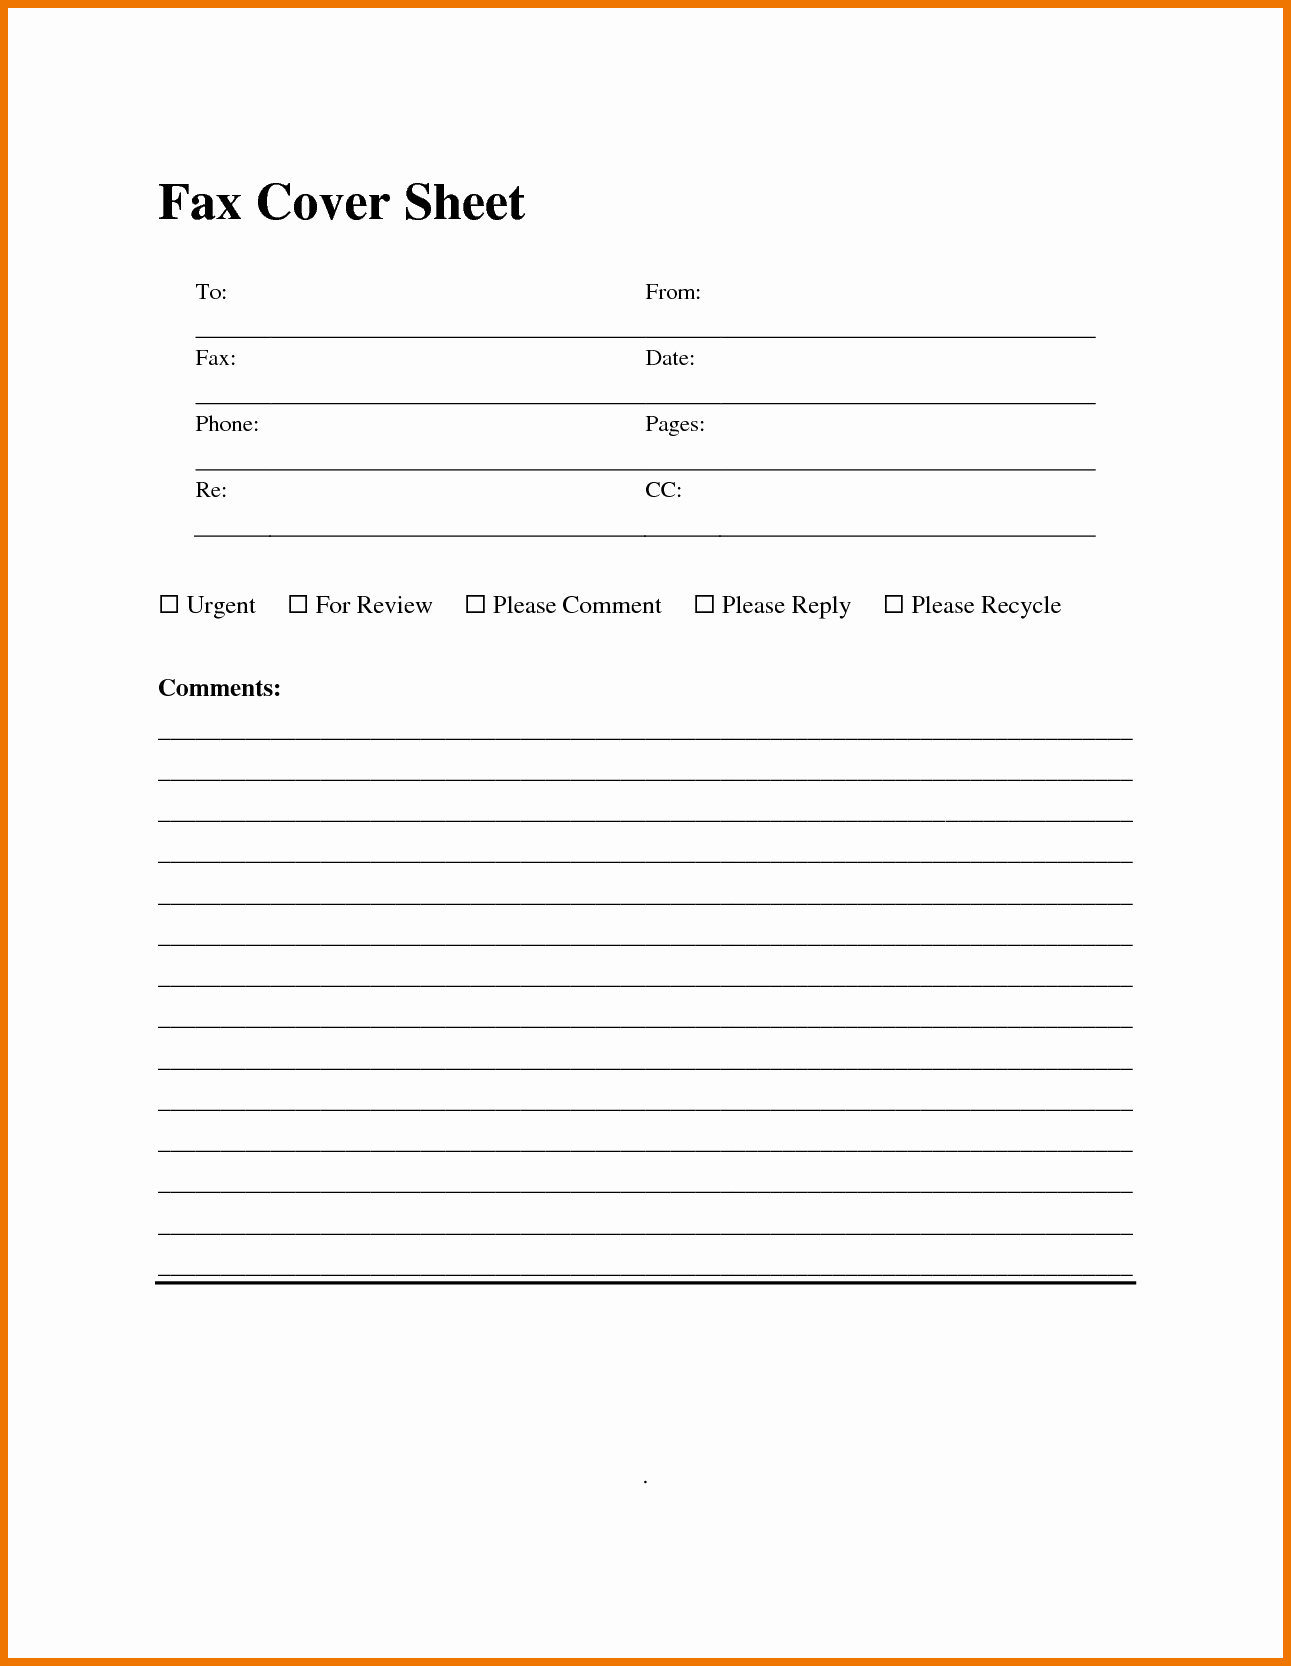 Fax Template Microsoft Word Elegant Fax Templates for Word Portablegasgrillweber